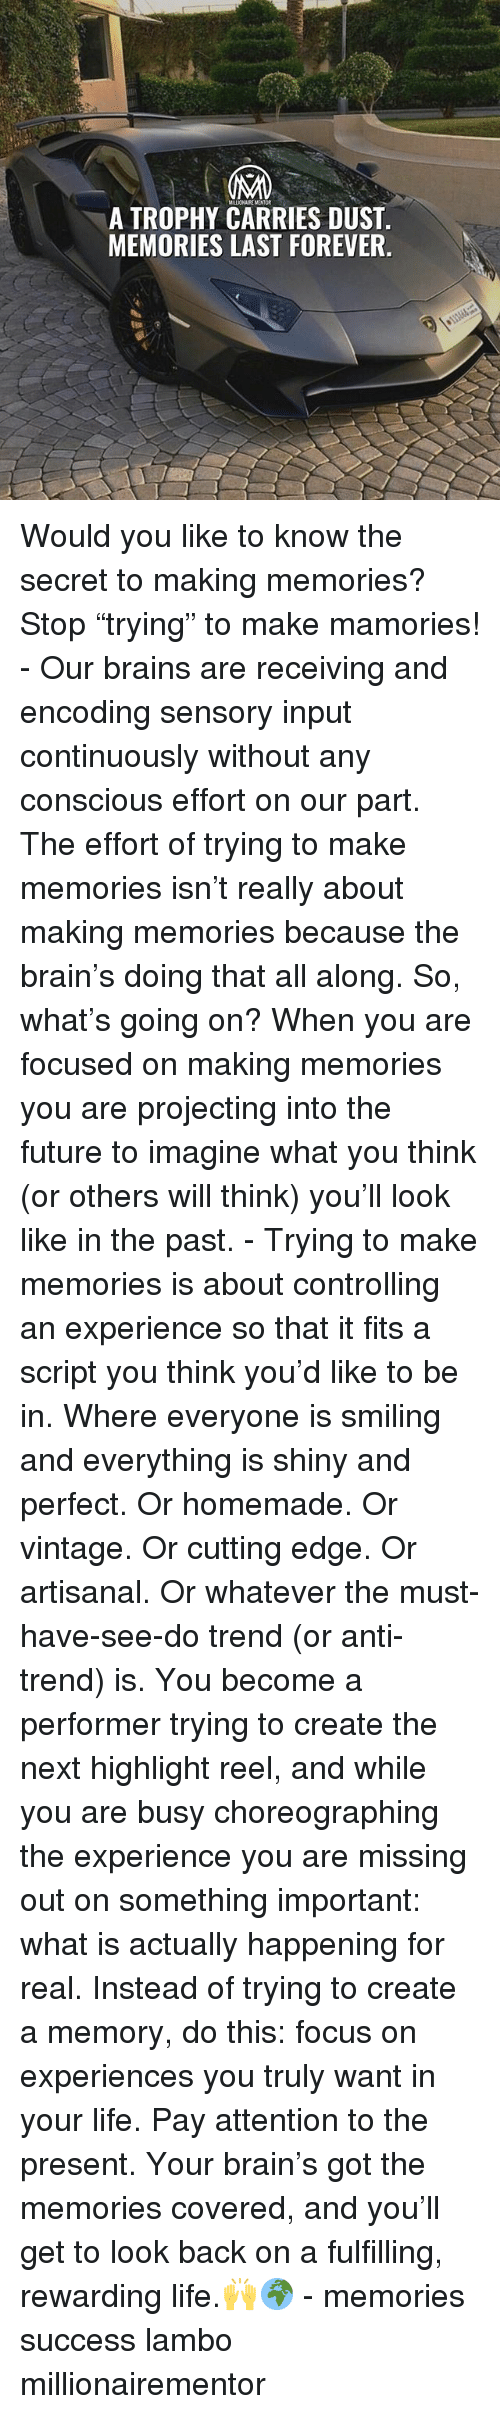 "Brains, Future, and Life: MAILLIONAIKEMENTOR  A TROPHY CARRIES DUST  MEMORIES LAST FOREVER. Would you like to know the secret to making memories? Stop ""trying"" to make mamories! - Our brains are receiving and encoding sensory input continuously without any conscious effort on our part. The effort of trying to make memories isn't really about making memories because the brain's doing that all along. So, what's going on? When you are focused on making memories you are projecting into the future to imagine what you think (or others will think) you'll look like in the past. - Trying to make memories is about controlling an experience so that it fits a script you think you'd like to be in. Where everyone is smiling and everything is shiny and perfect. Or homemade. Or vintage. Or cutting edge. Or artisanal. Or whatever the must-have-see-do trend (or anti-trend) is. You become a performer trying to create the next highlight reel, and while you are busy choreographing the experience you are missing out on something important: what is actually happening for real. Instead of trying to create a memory, do this: focus on experiences you truly want in your life. Pay attention to the present. Your brain's got the memories covered, and you'll get to look back on a fulfilling, rewarding life.🙌🌍 - memories success lambo millionairementor"